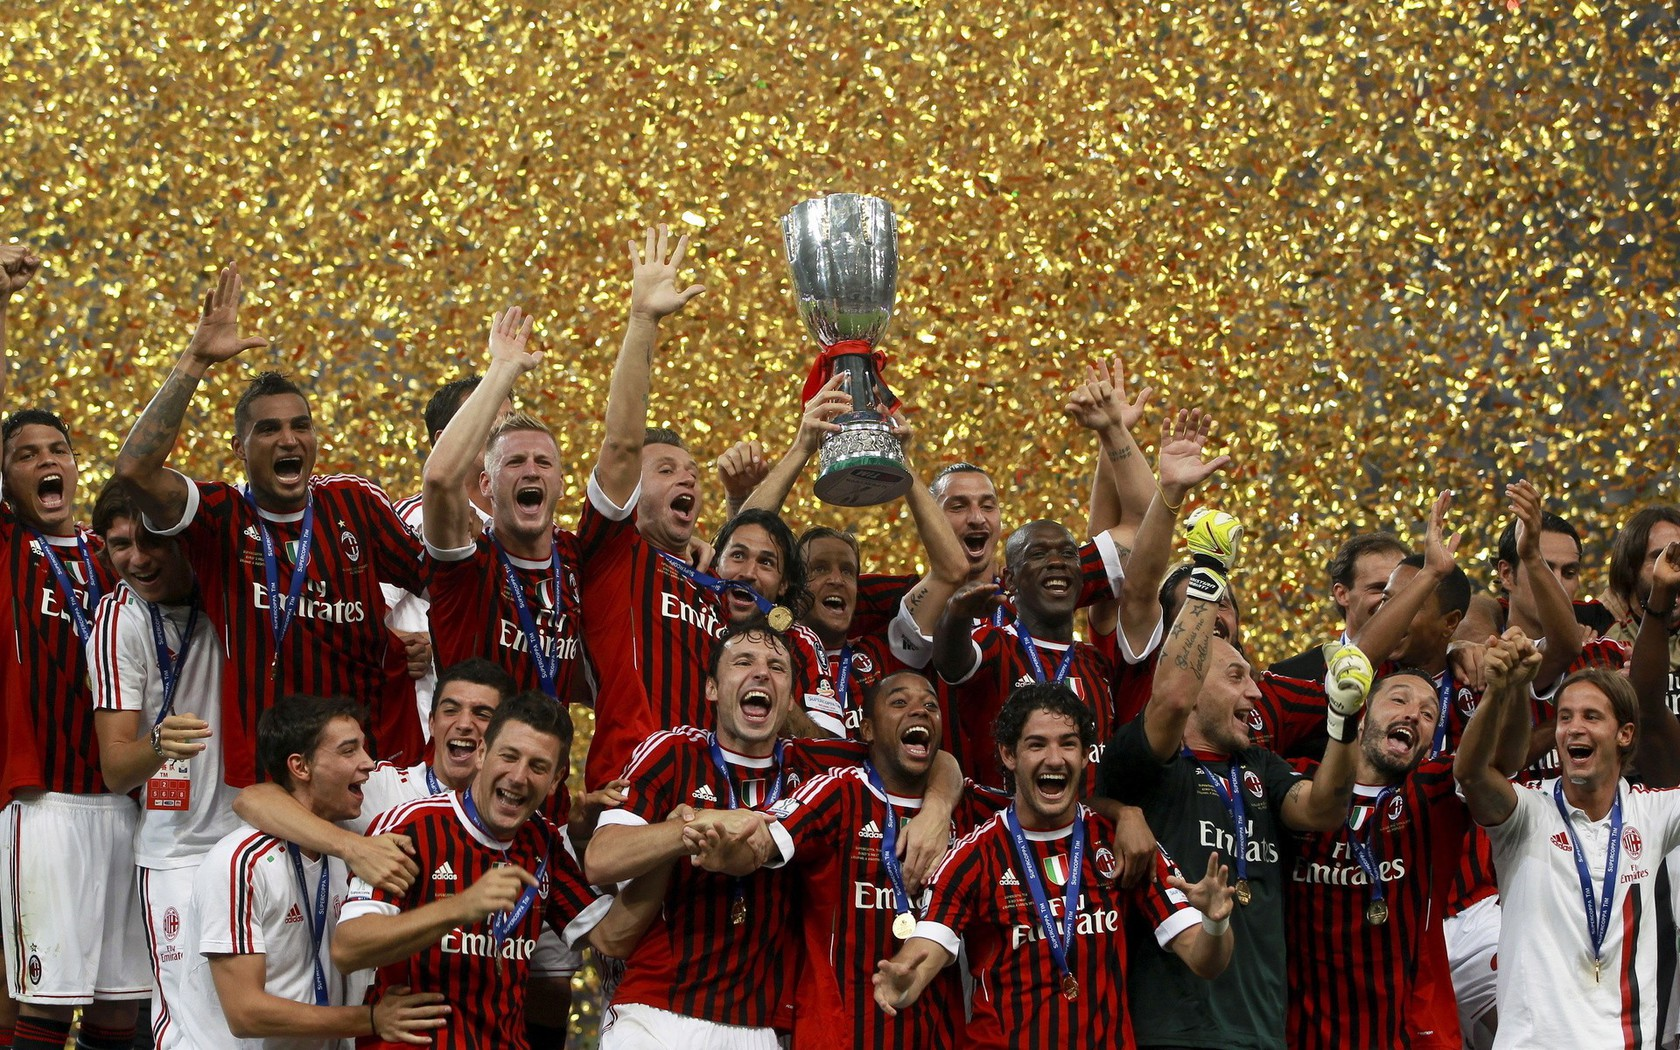 Soccer Iphone Wallpaper Hd Sports Soccer Ac Milan Football Teams Wallpaper